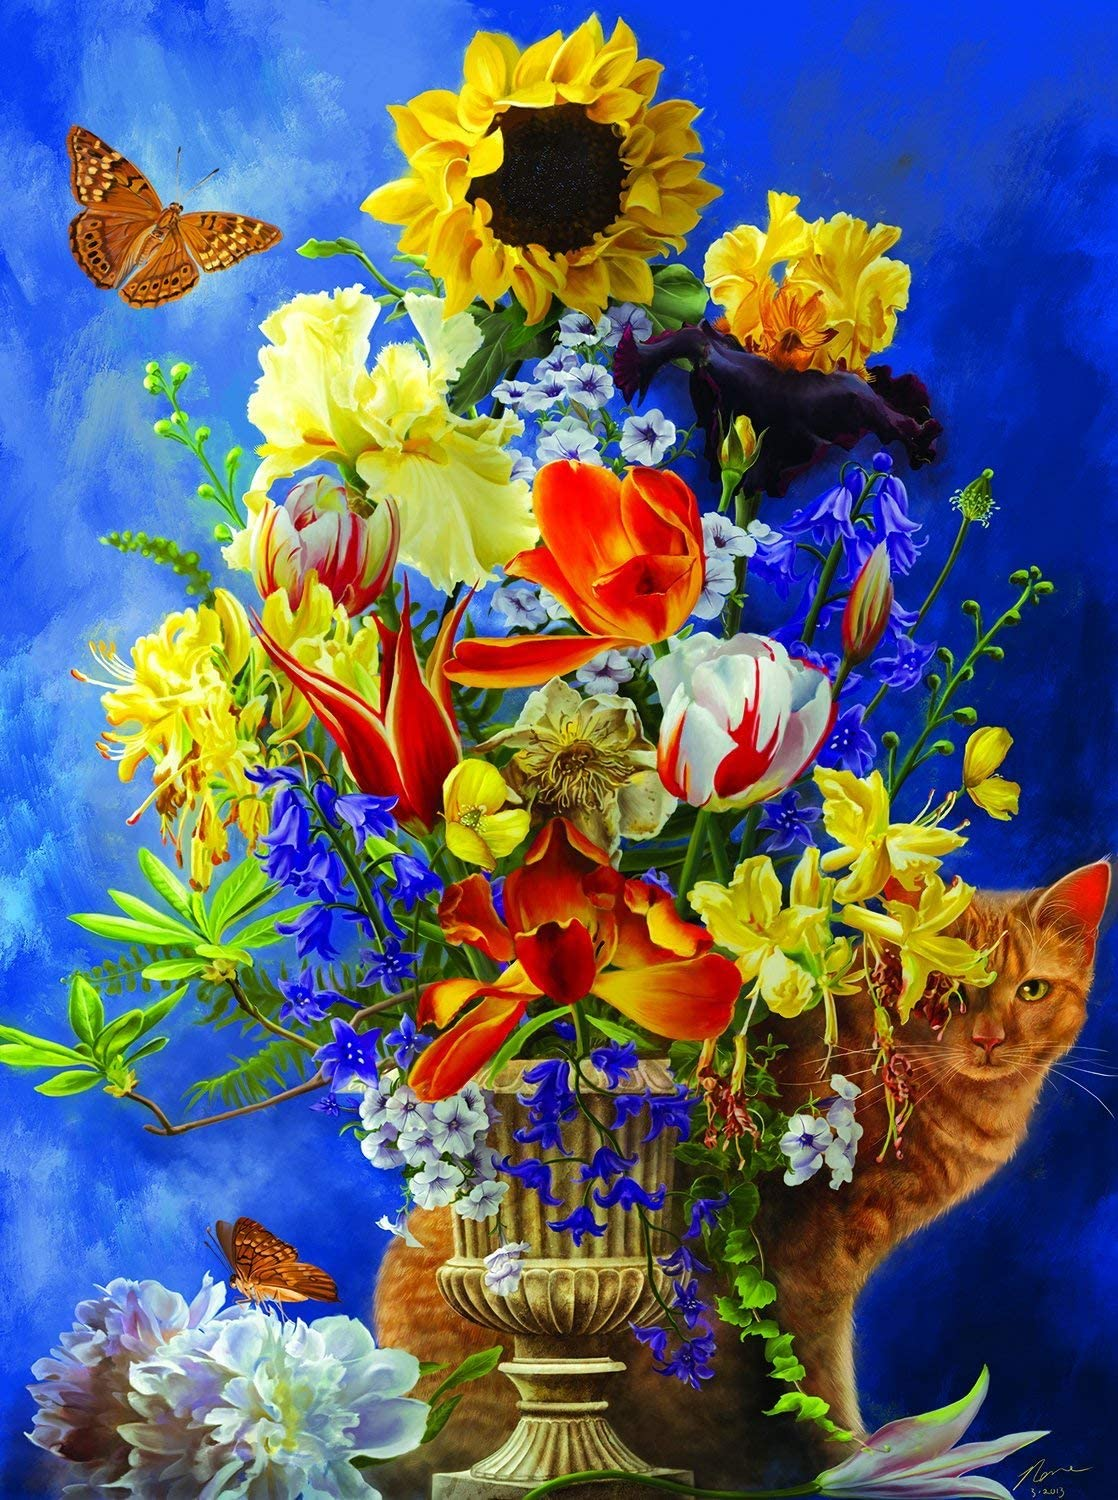 Garden of Gold 1000 pc Jigsaw Puzzle by SunsOut